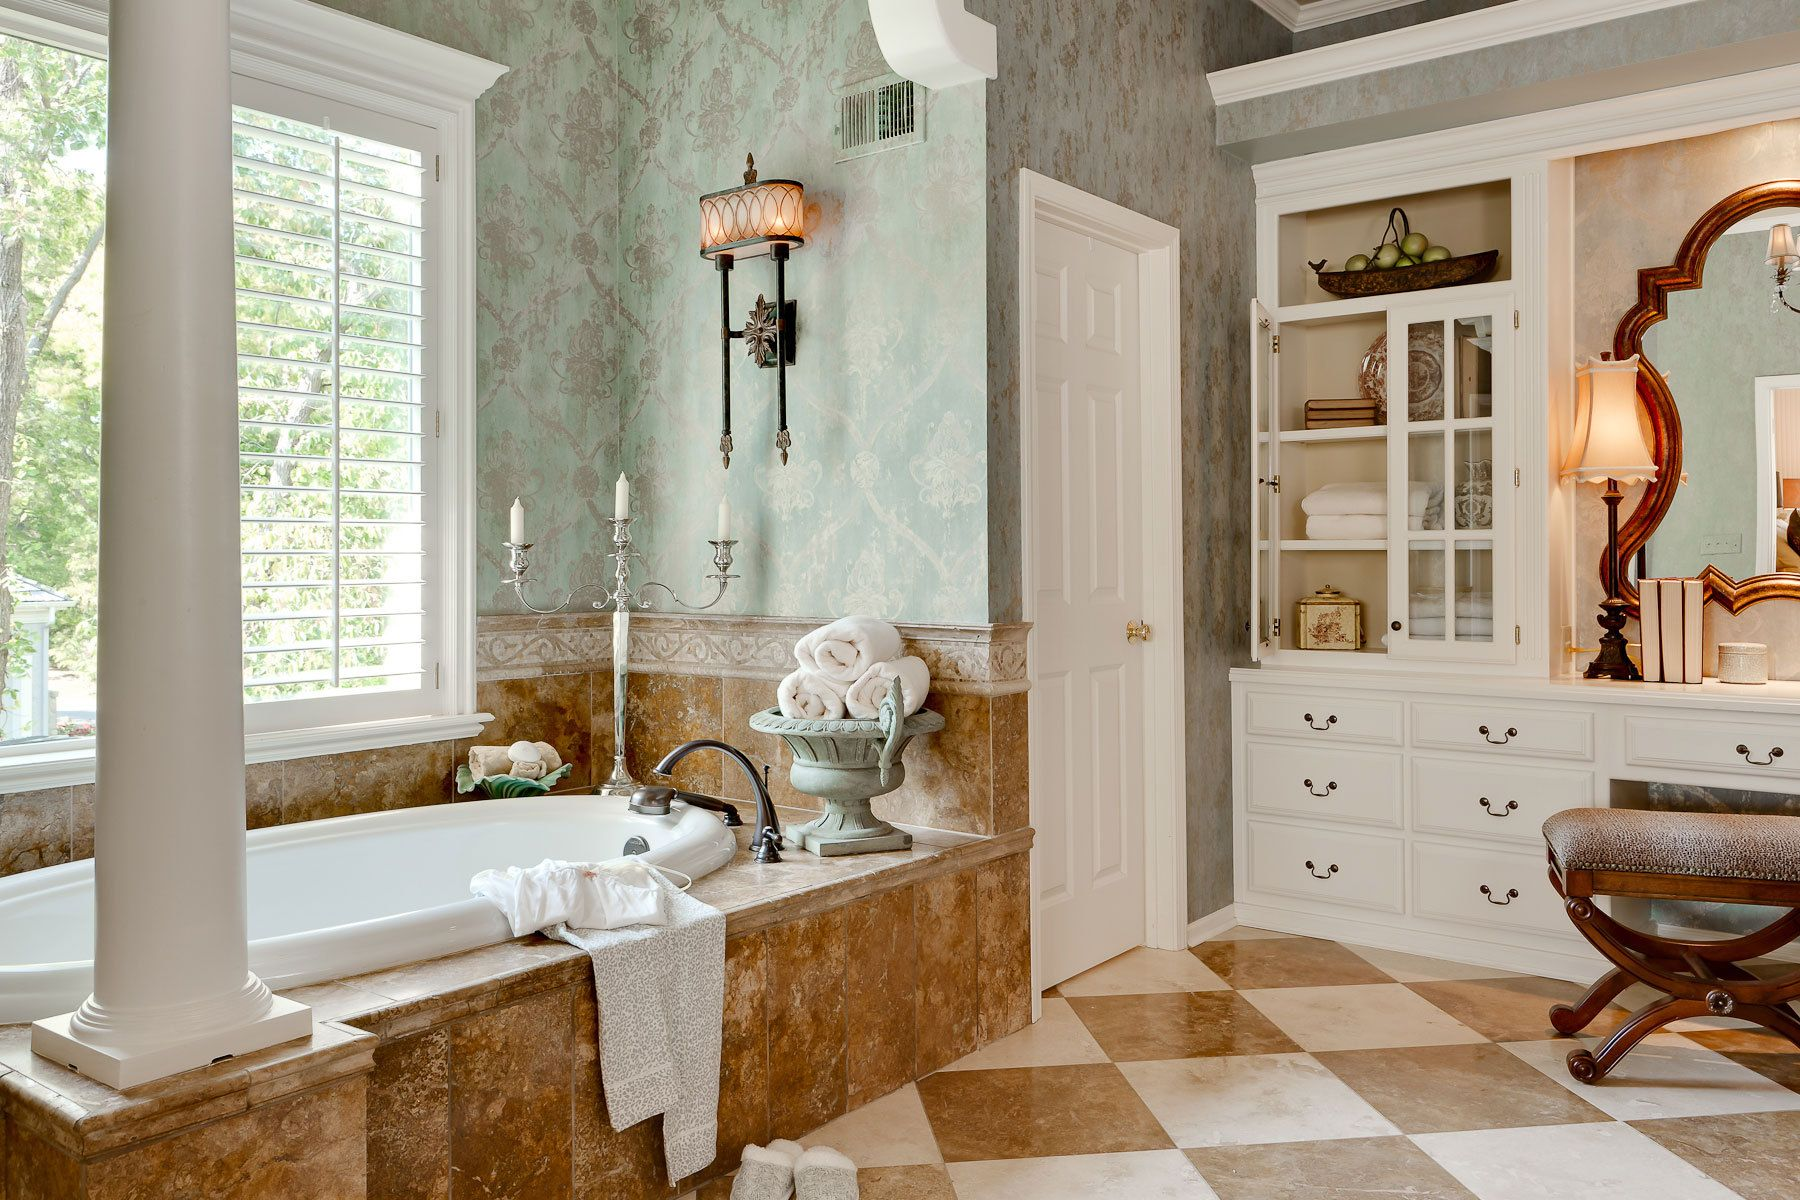 Vintage Interior Design: The Nostalgic Style  Bathroom design